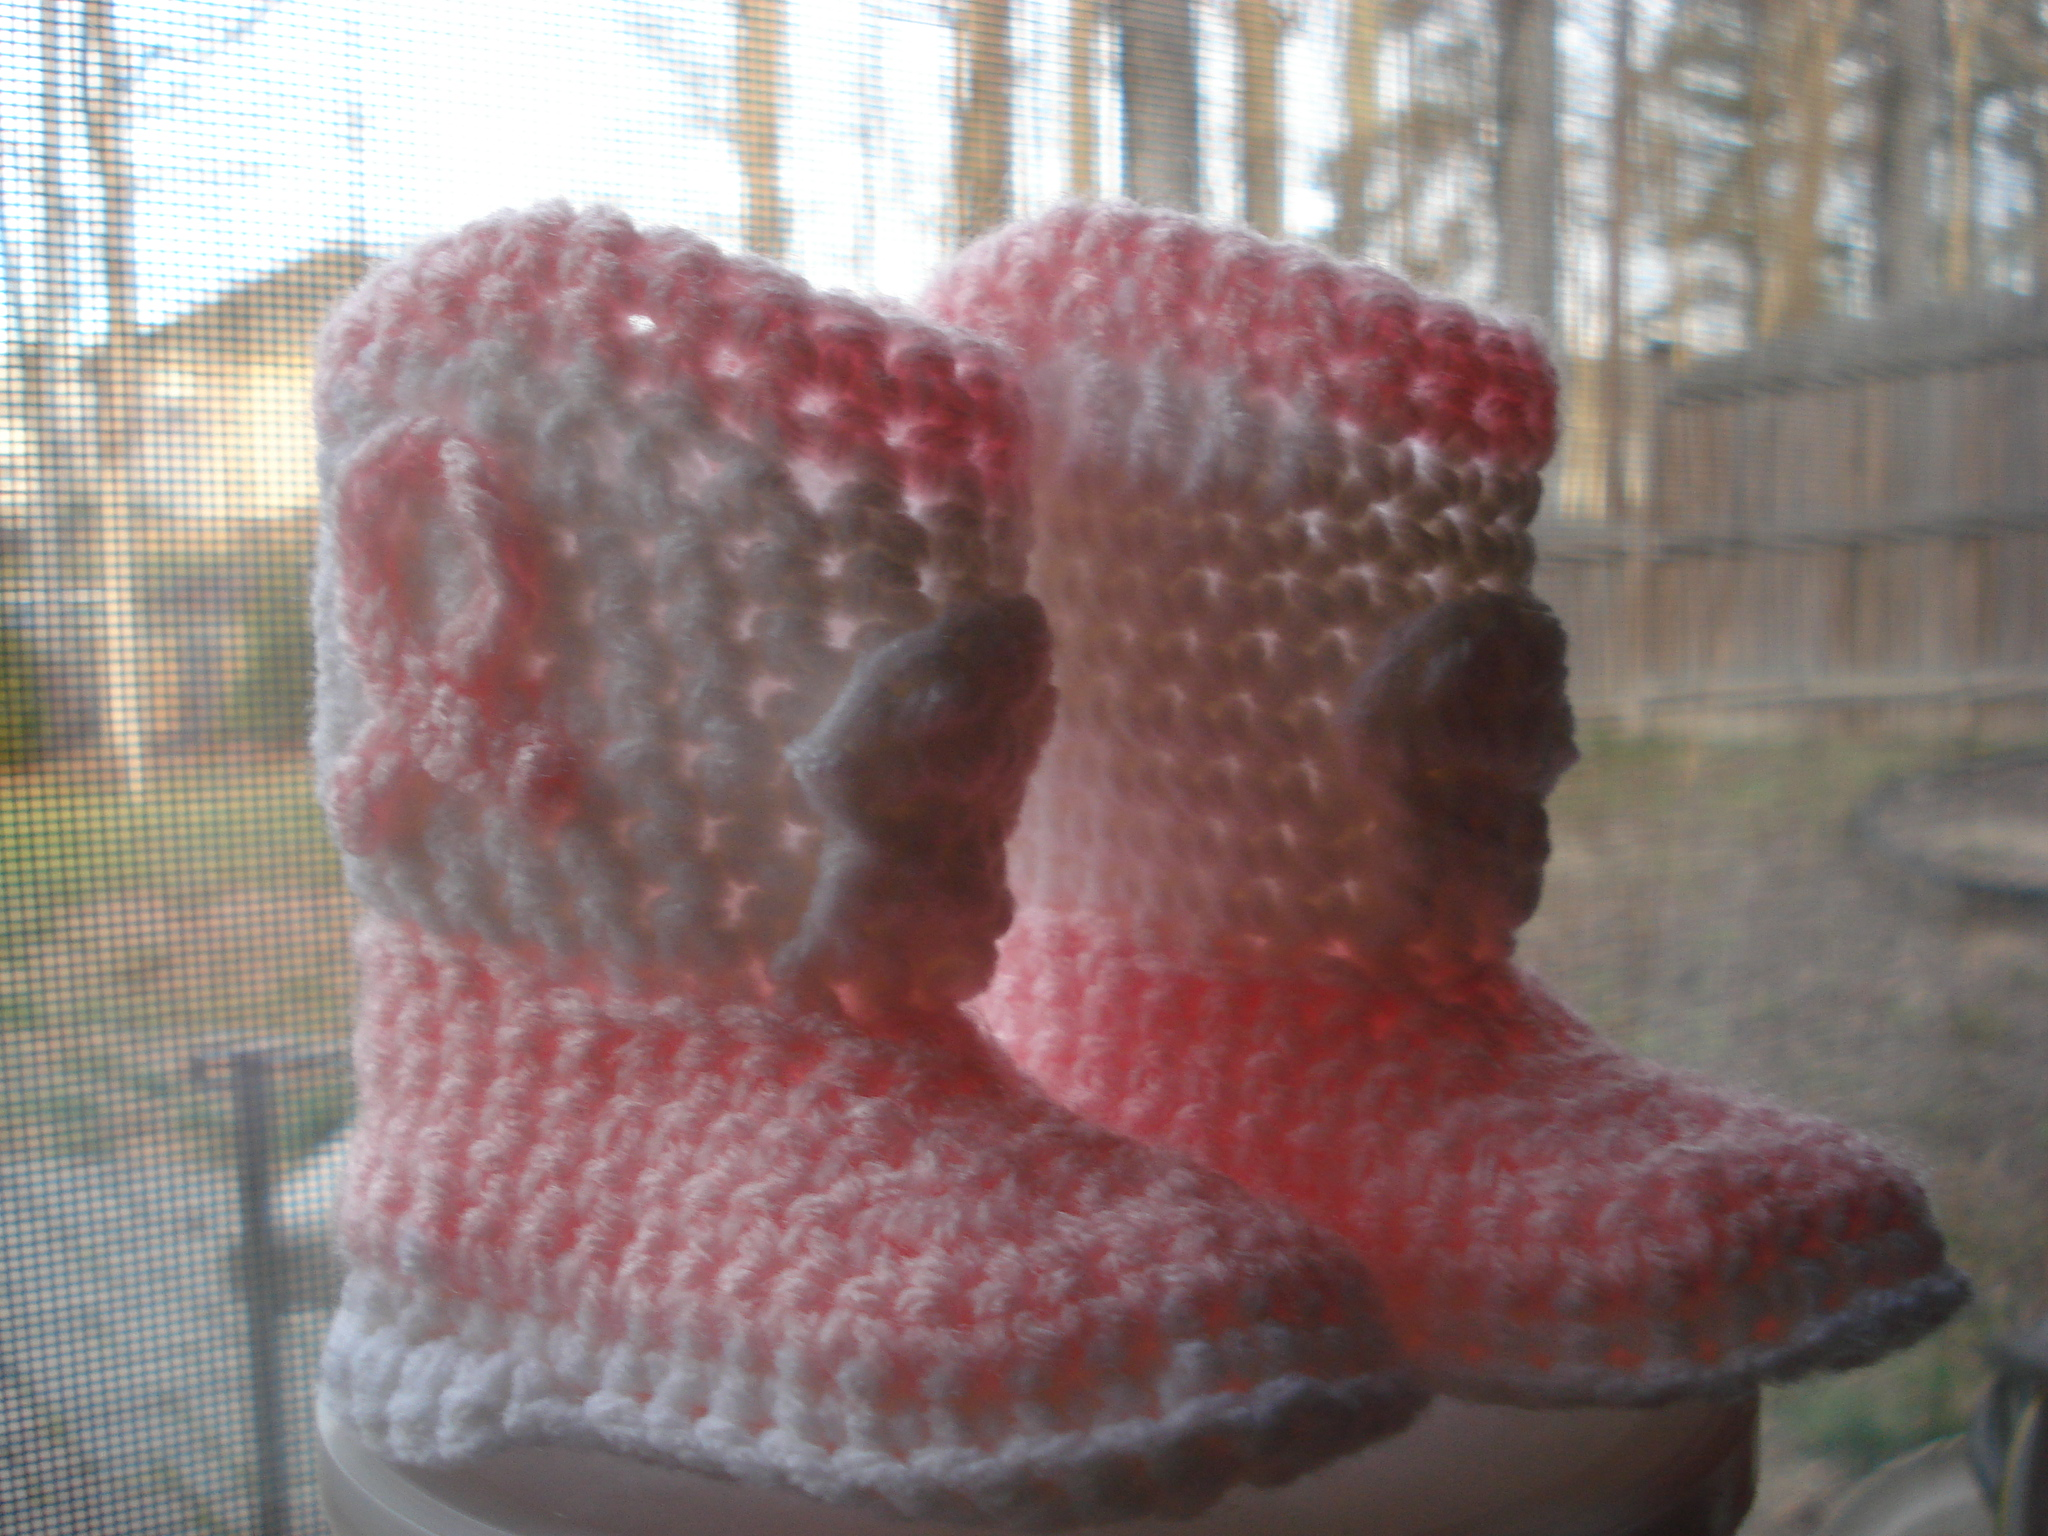 Crochet Baby Girl Boots Pattern : CROCHET COWBOY BOOT PATTERN Crochet Patterns